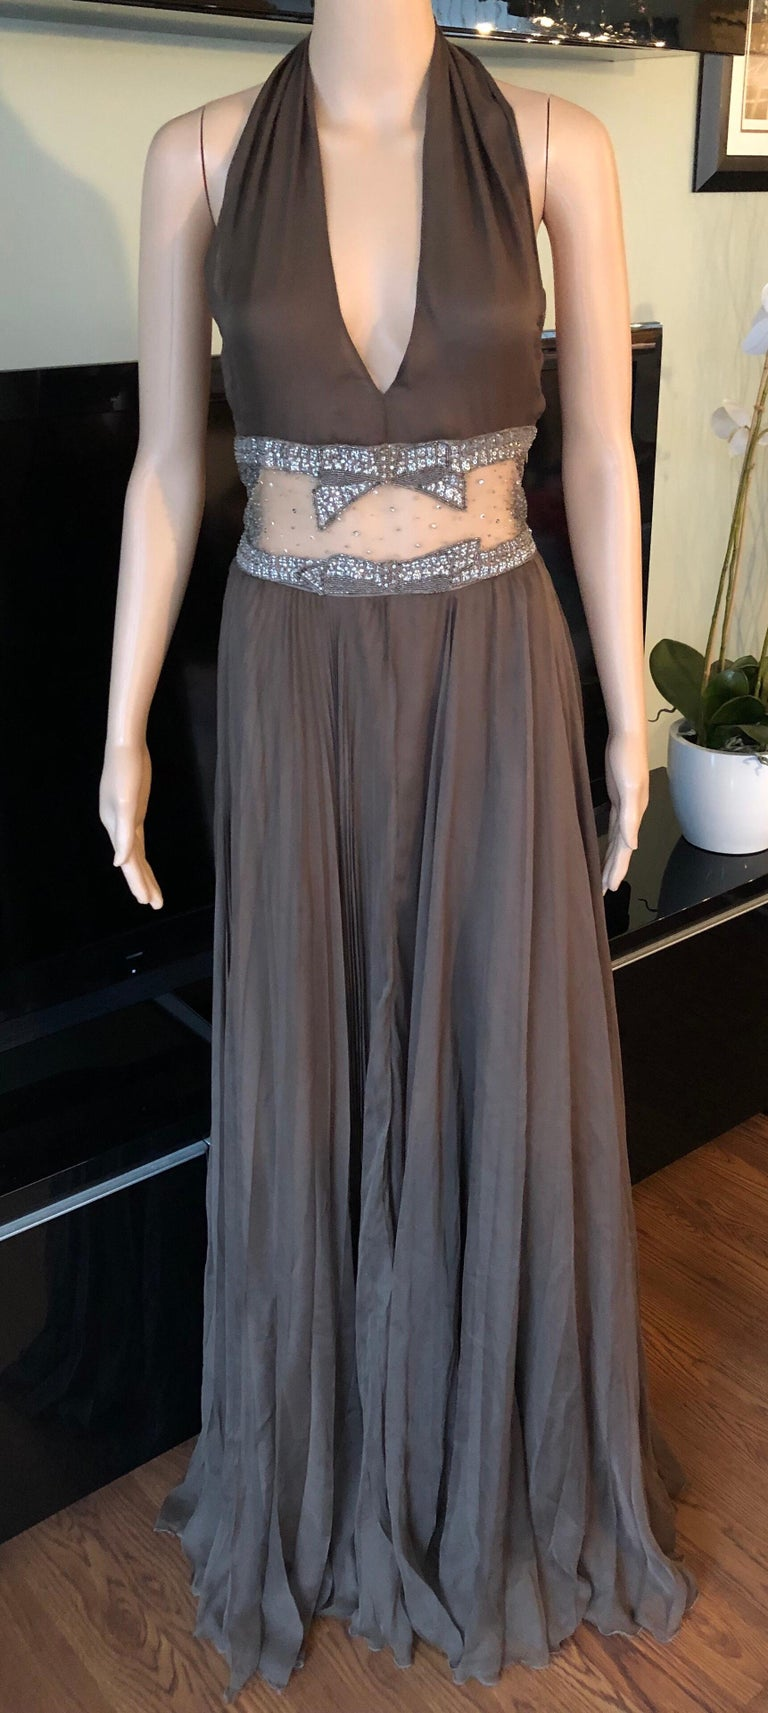 Valentino S/S 2001 Runway Sheer Panel Embellished Brown Dress Gown  In Good Condition For Sale In Totowa, NJ